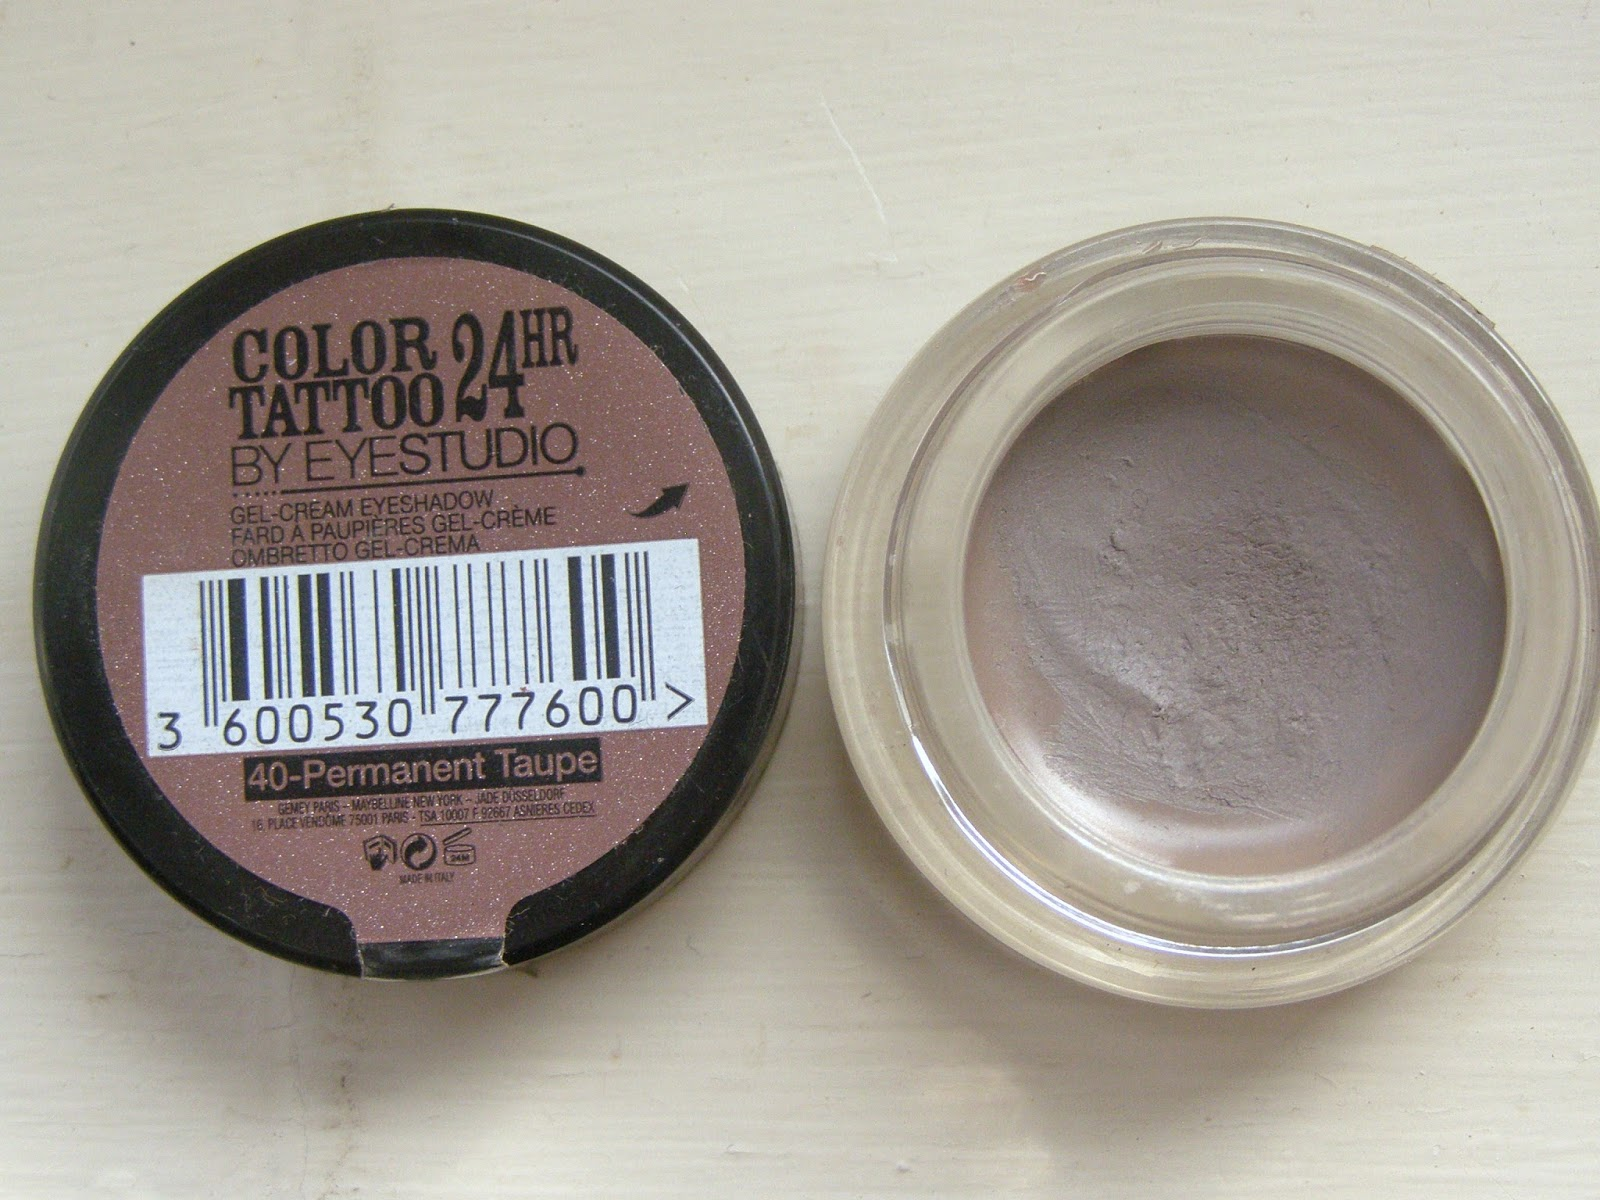 Maybelline Colout Tattoo Cream Eyeshadow in Permanent Taupe